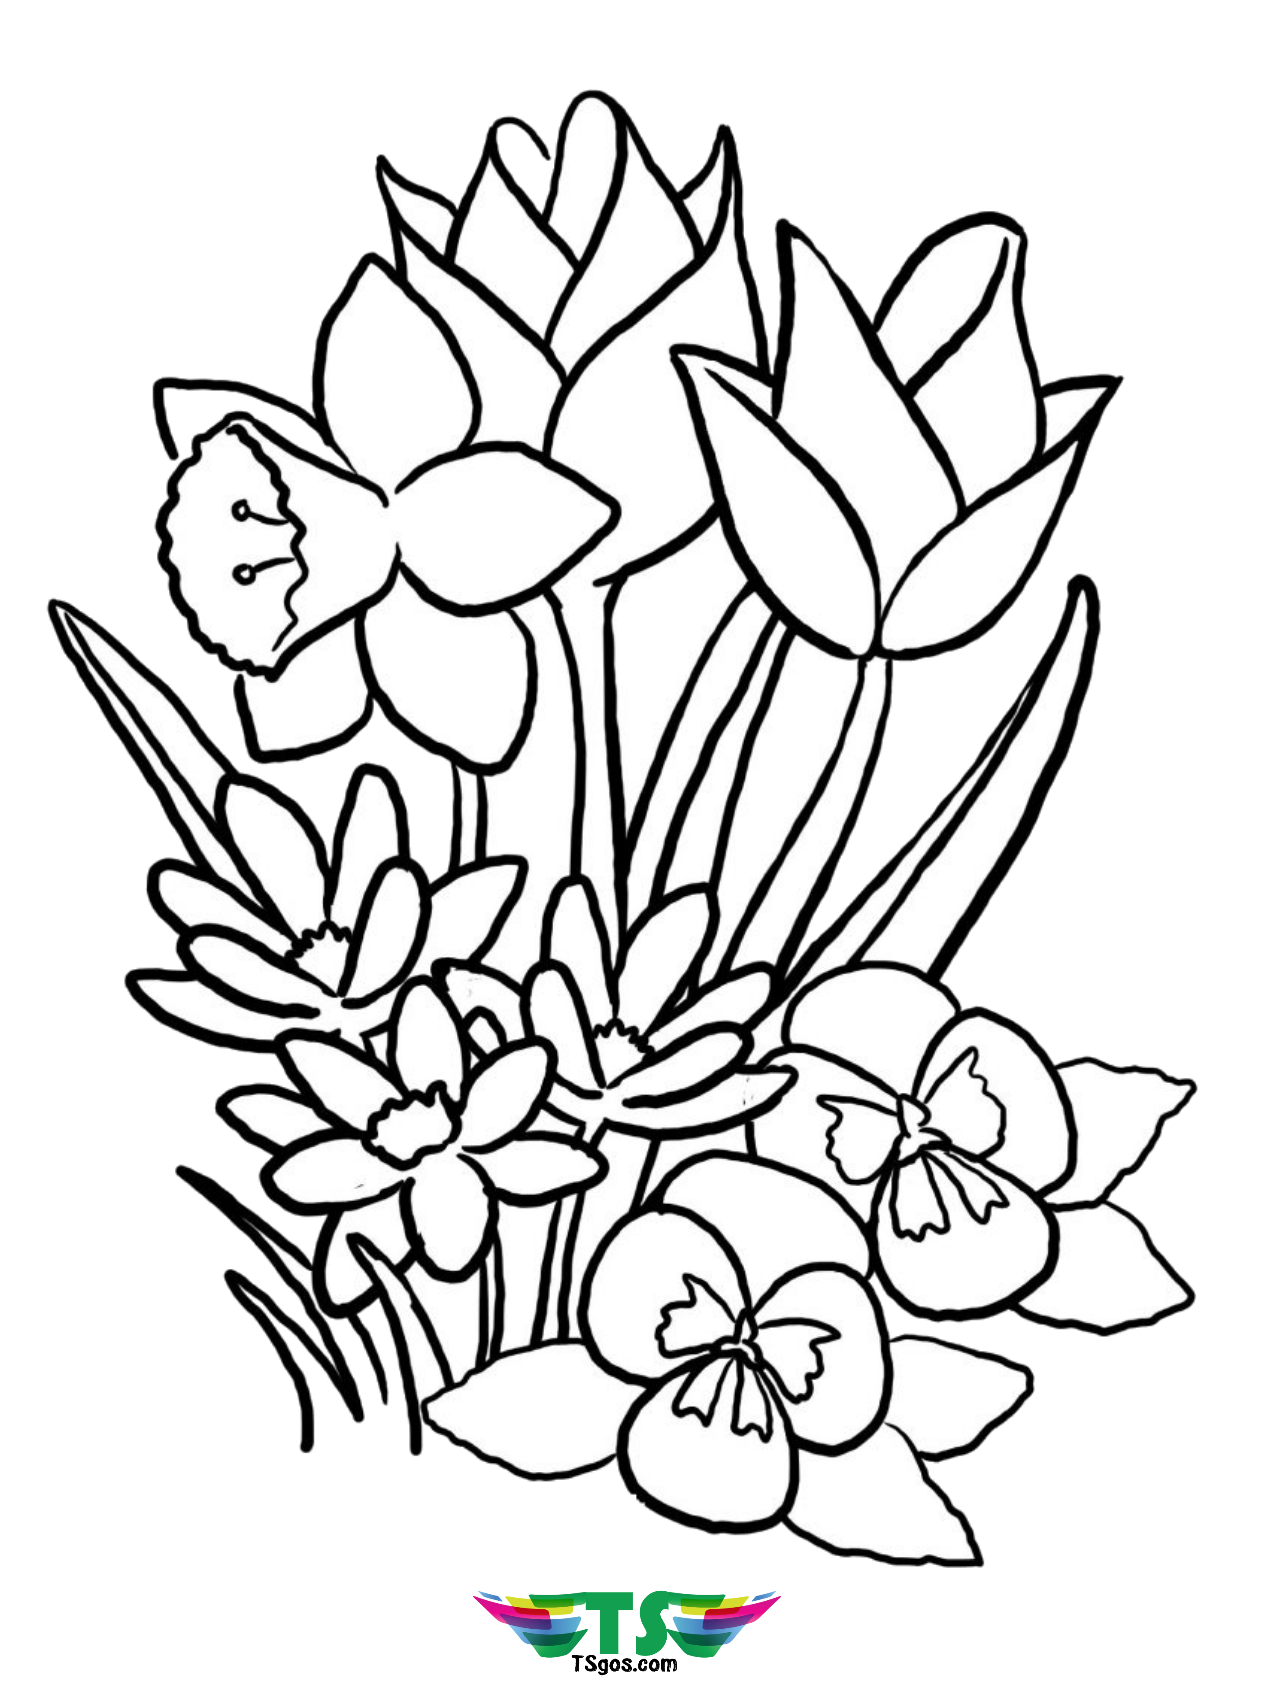 beautiful flowers coloring pages colorful flower drawing at getdrawings free download beautiful flowers pages coloring